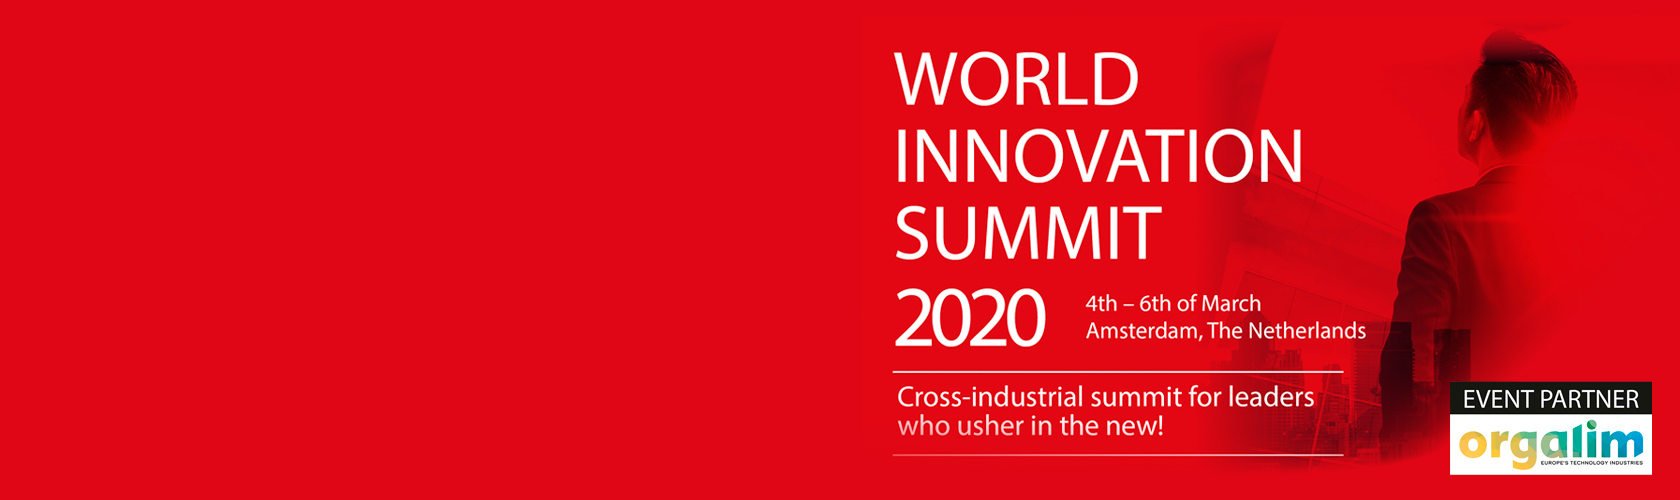 World Innovation Summit